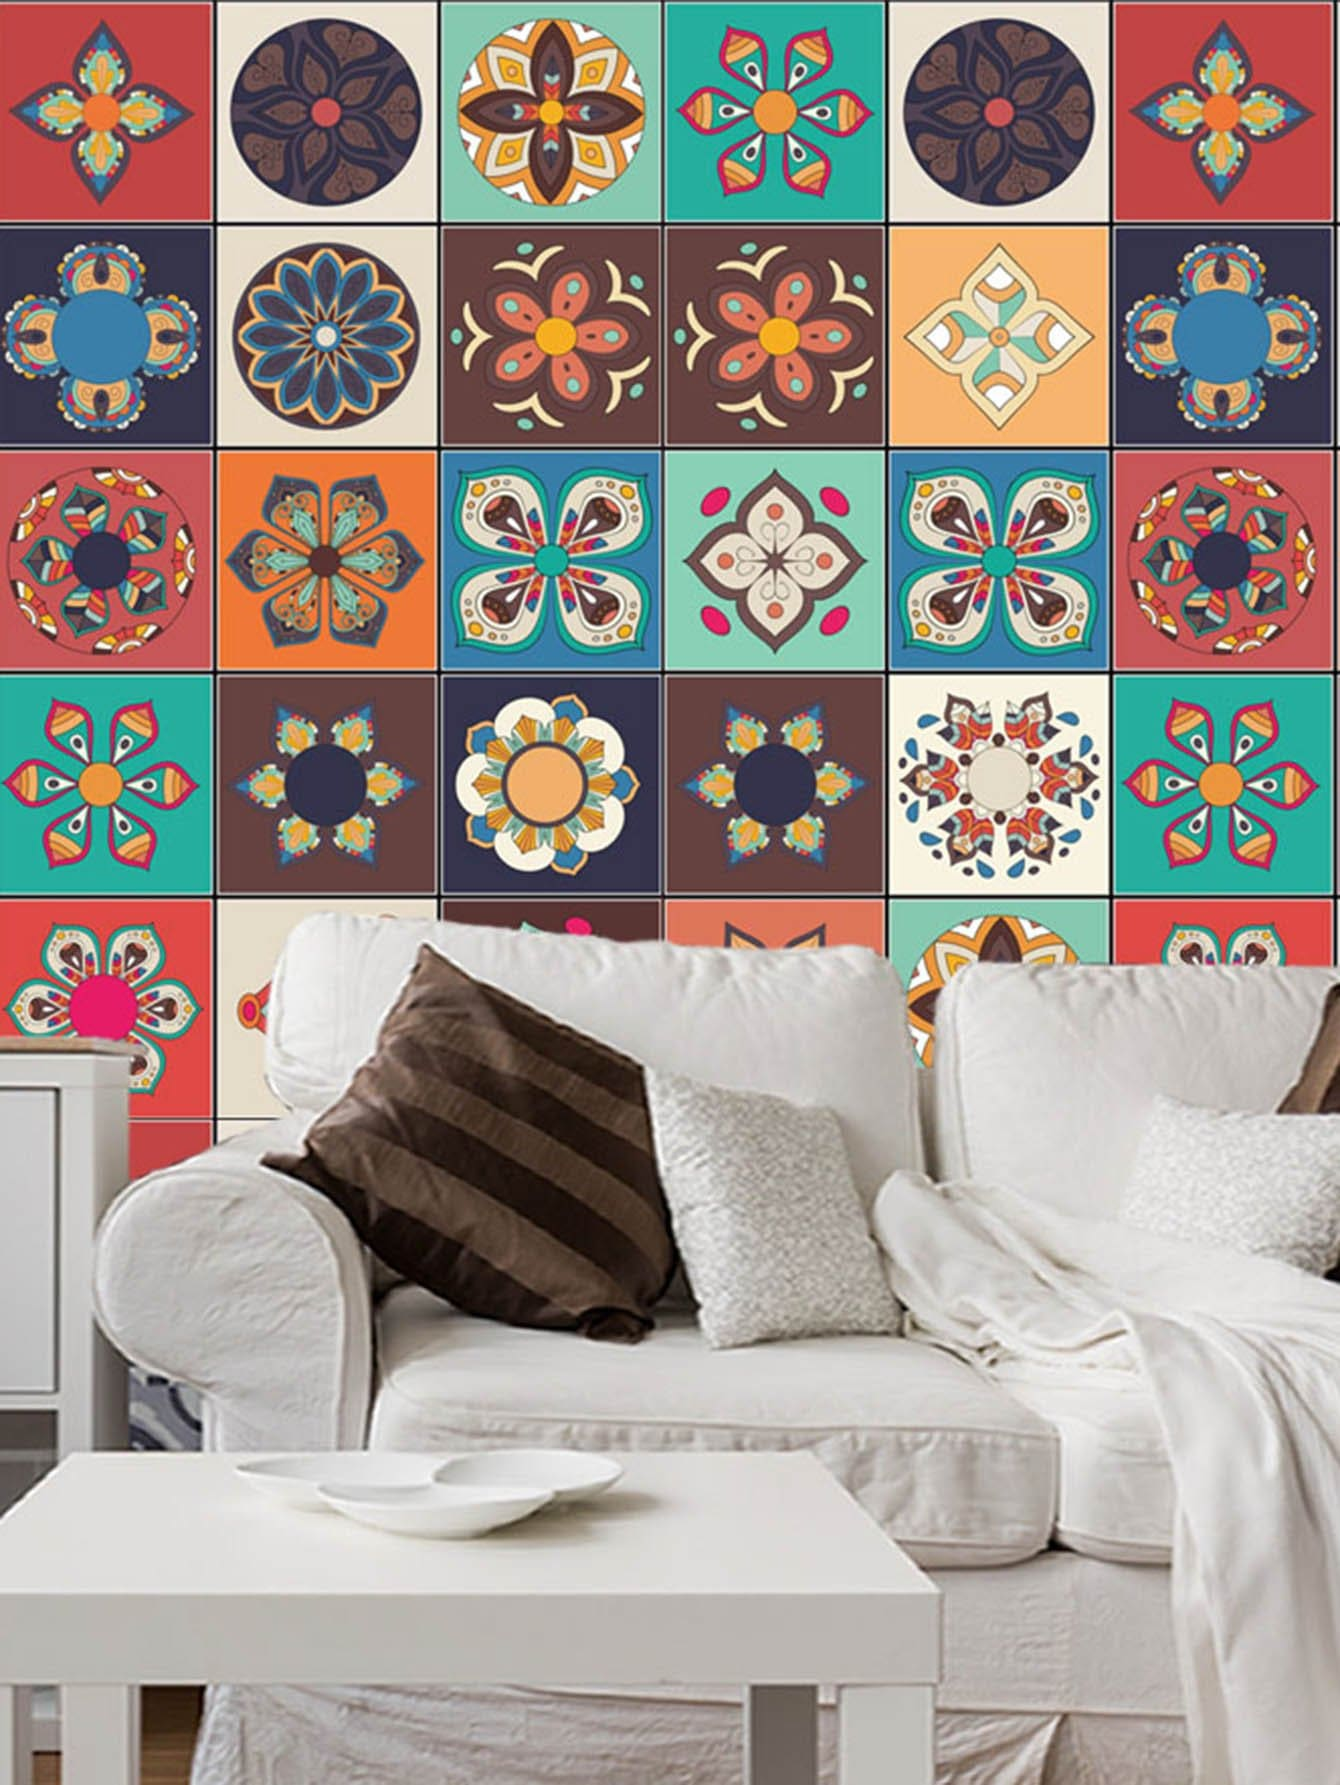 Random Abstract Flower Ceramic Tile Decal 1pc палатка